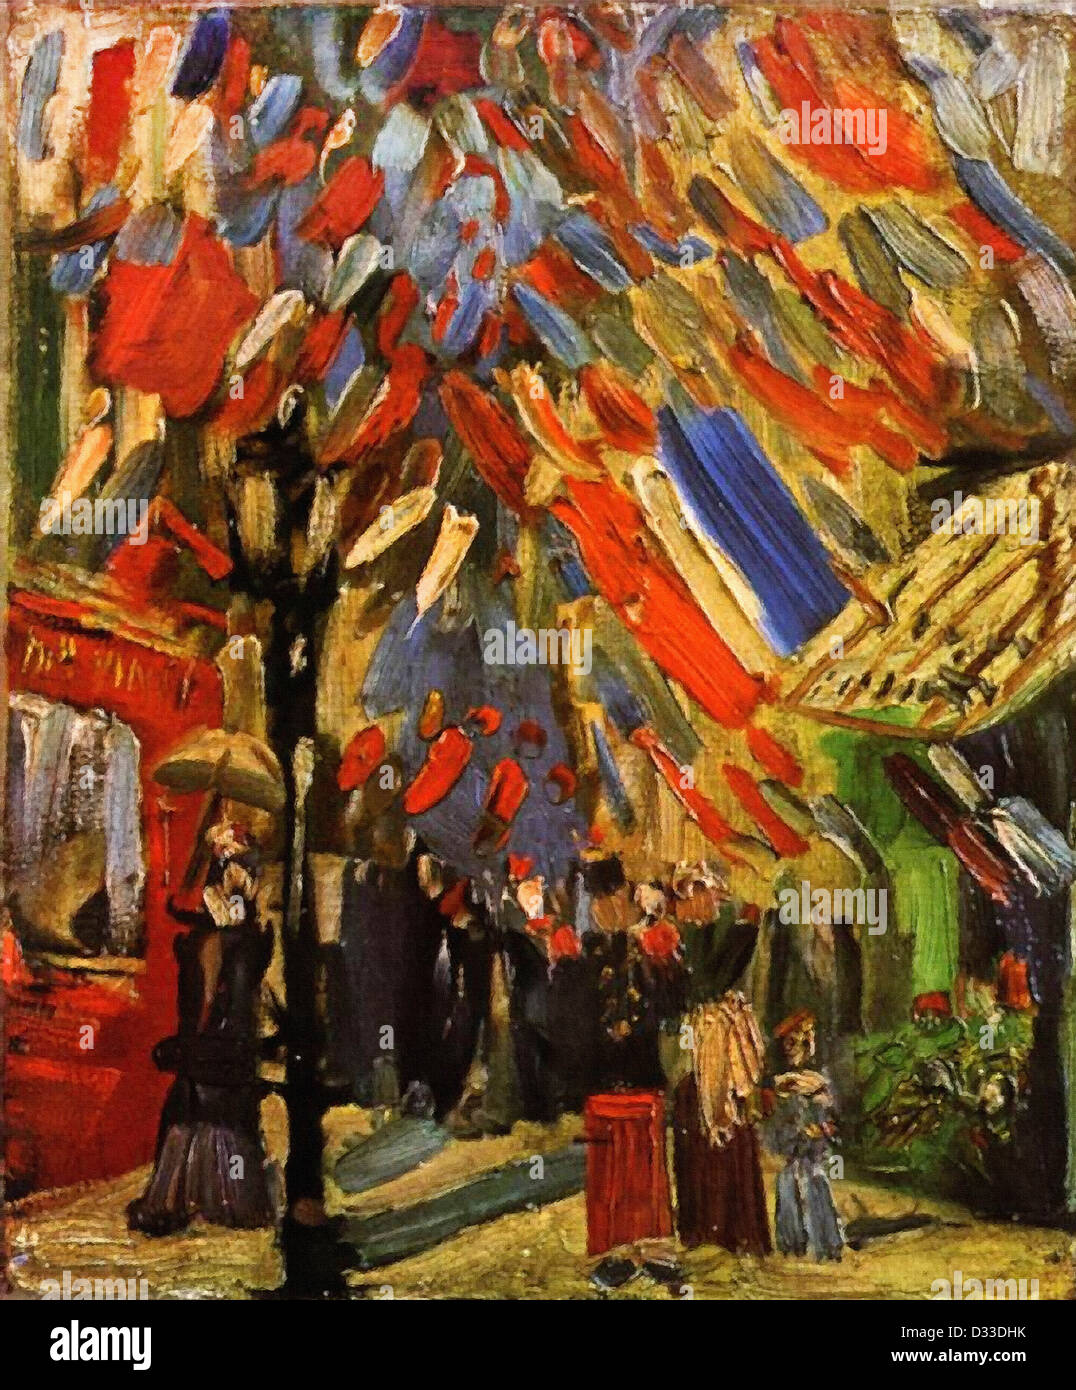 Vincent van Gogh: The Fourteenth of July Celebration in Paris. 1886. Oil on canvas. Private Collection. Post-Impressionism. - Stock Image